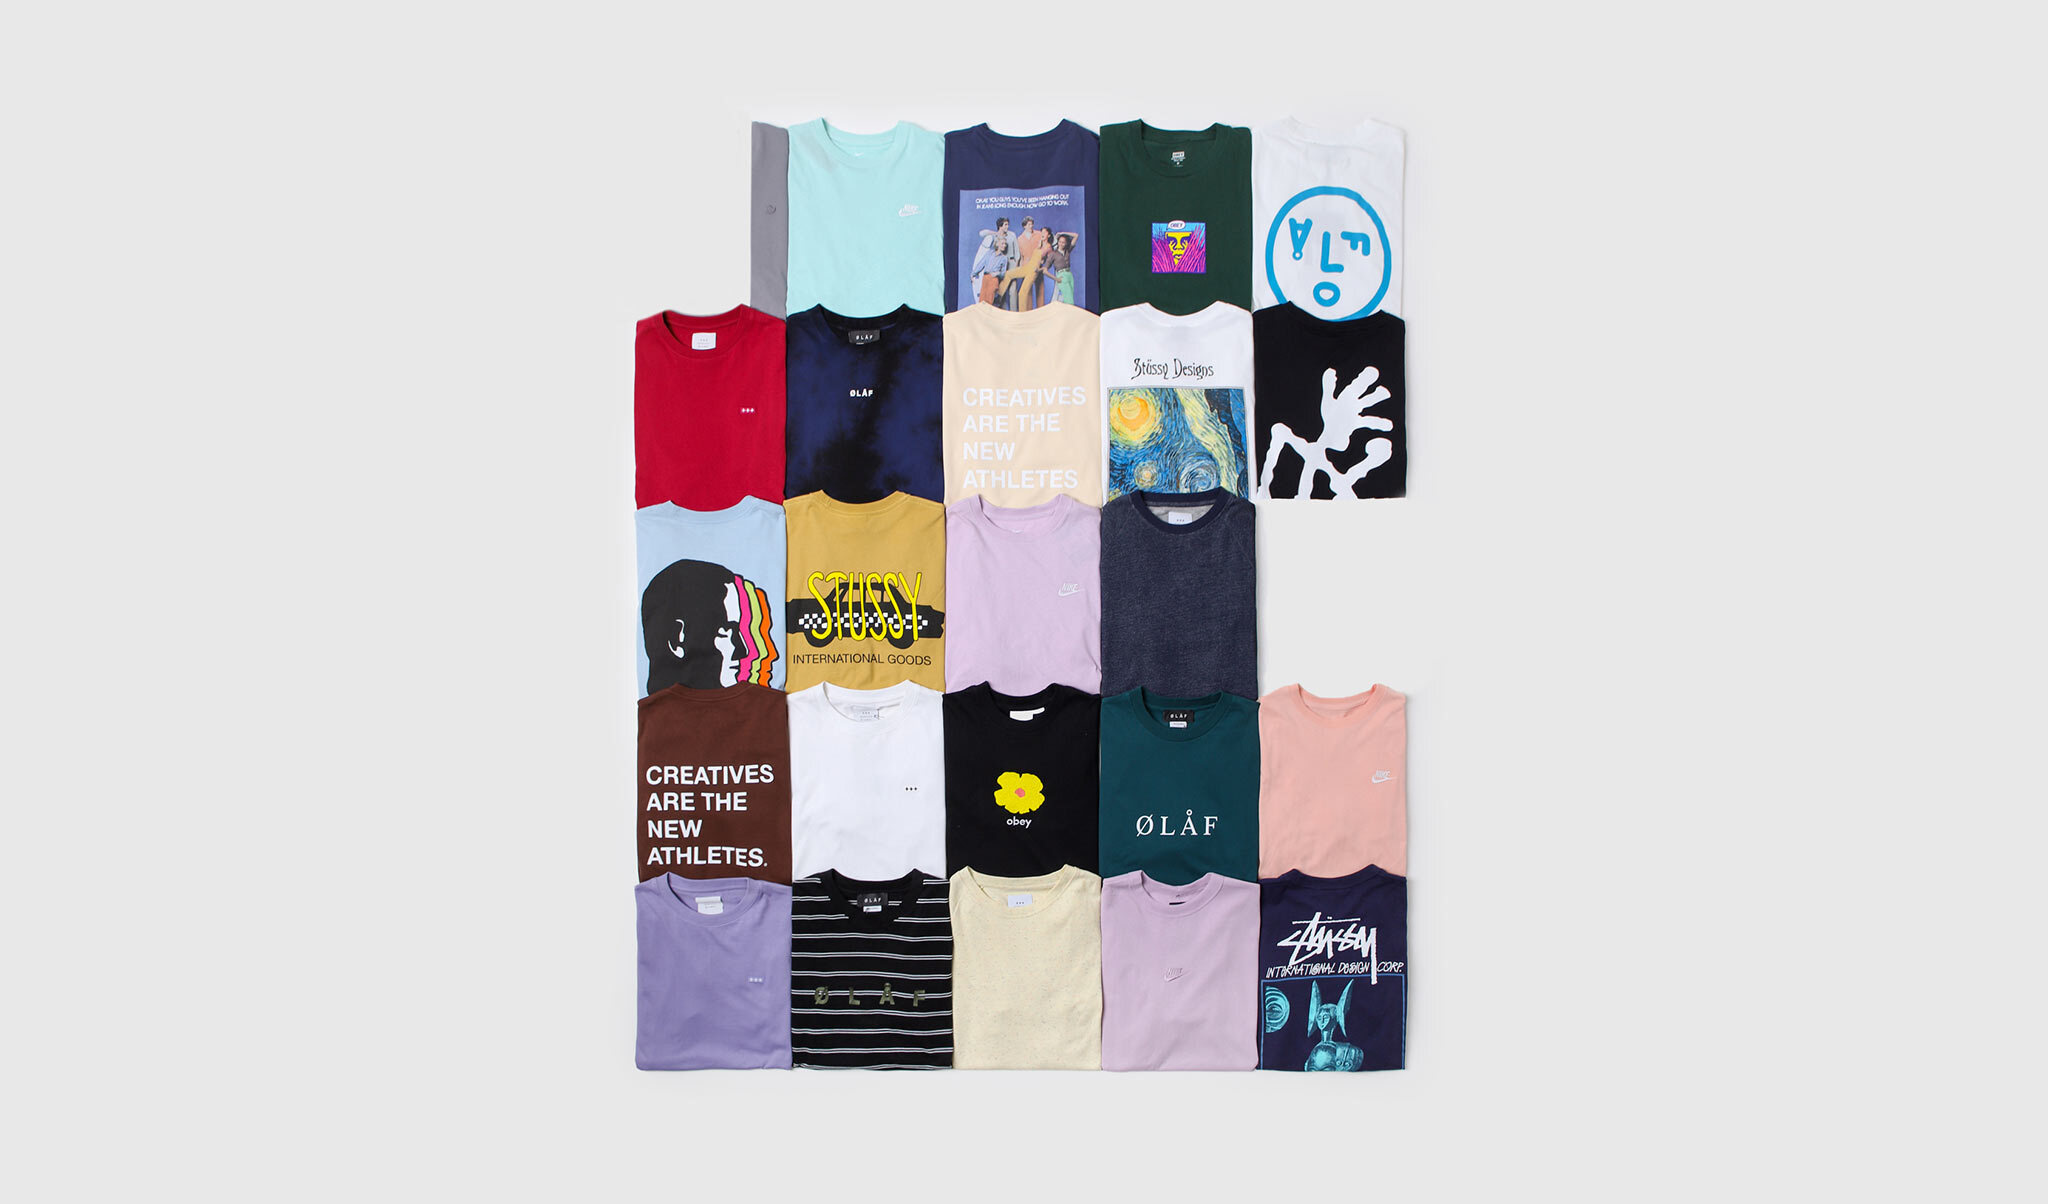 What if we would only send you 7% of a t-shirt?